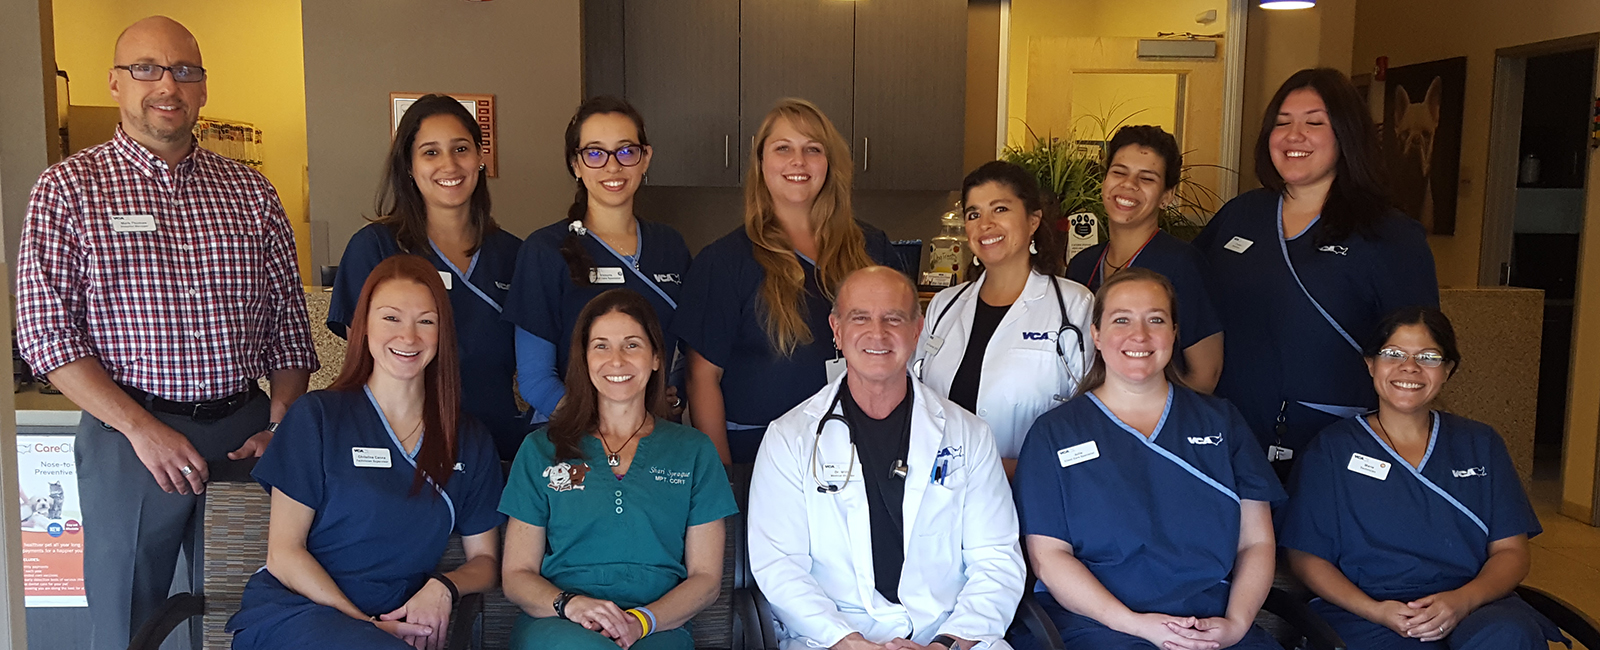 Homepage Team Picture of VCA Promenade Animal Hospital